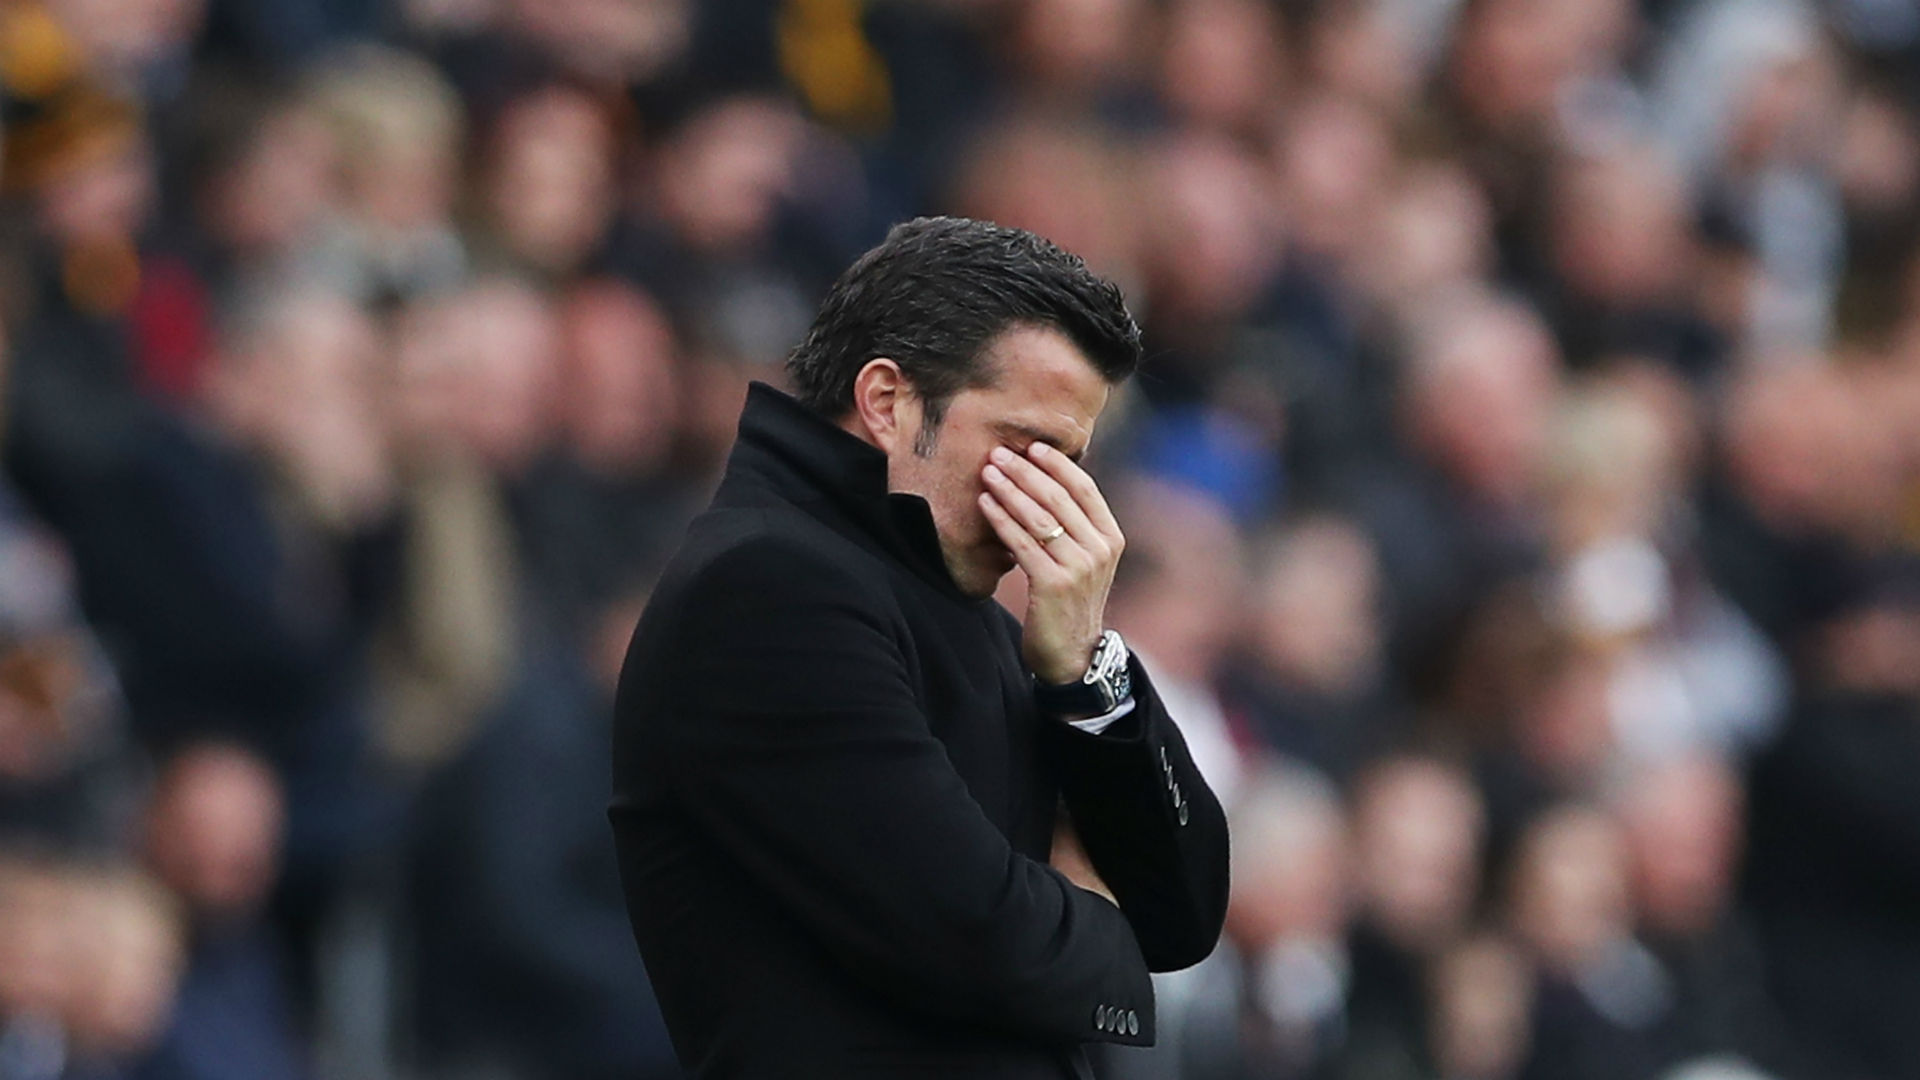 Silva calls for calm after Sunderland shocker